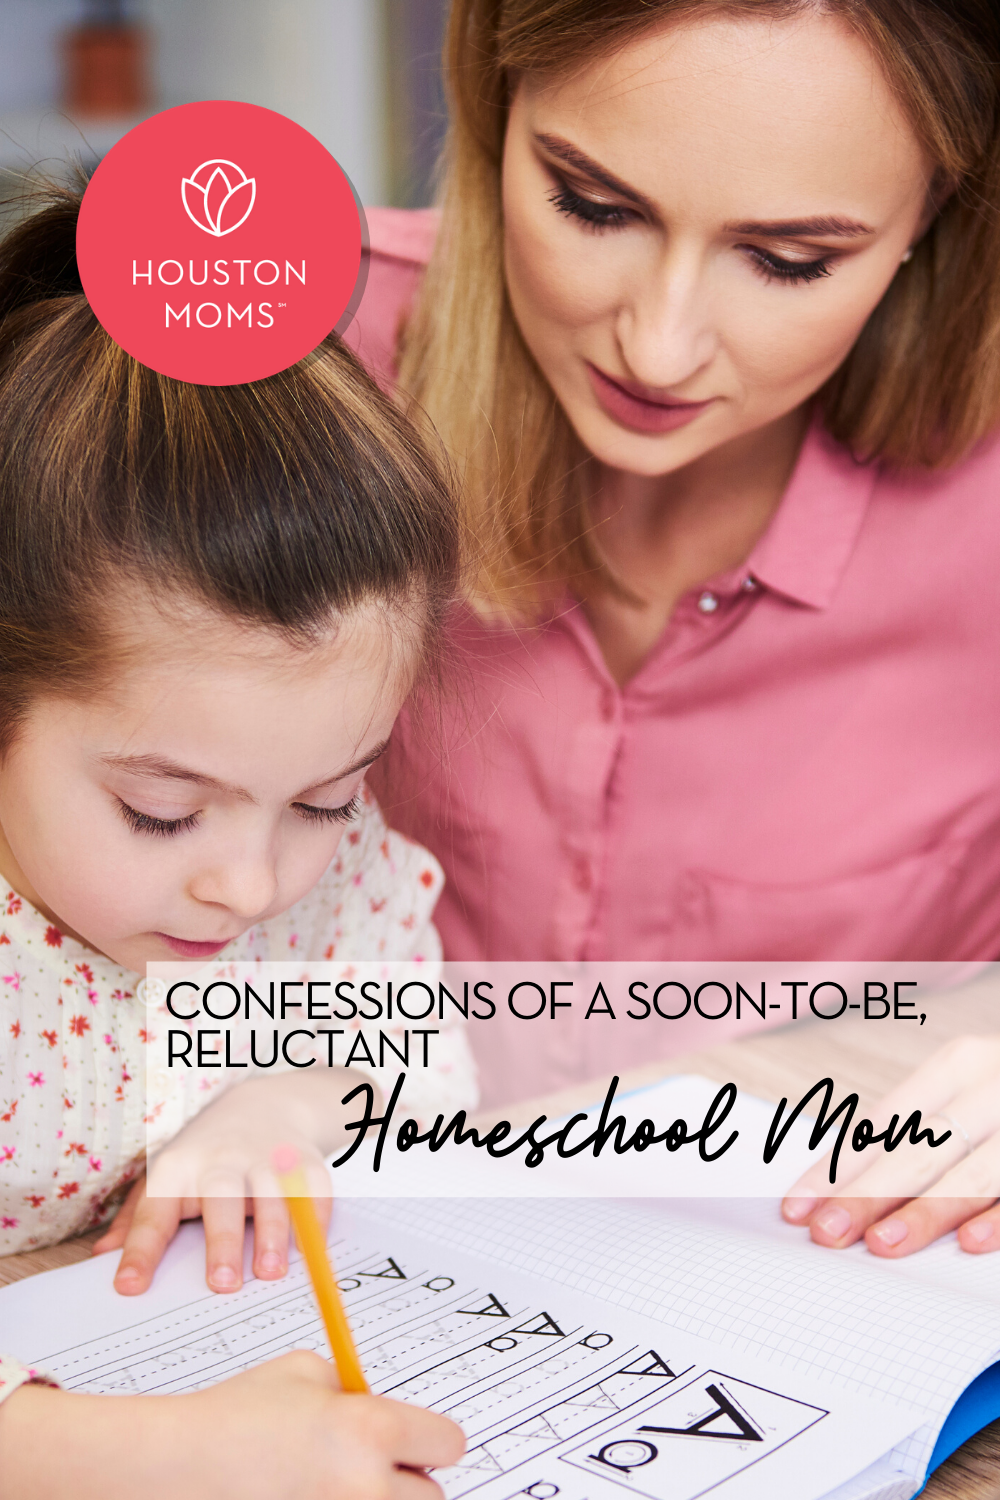 "Houston Moms ""Confessions of a Soon-to-be Reluctant Homeschool Mom"" #houstonmoms #houstonmomsblog #momsaroundhouston"